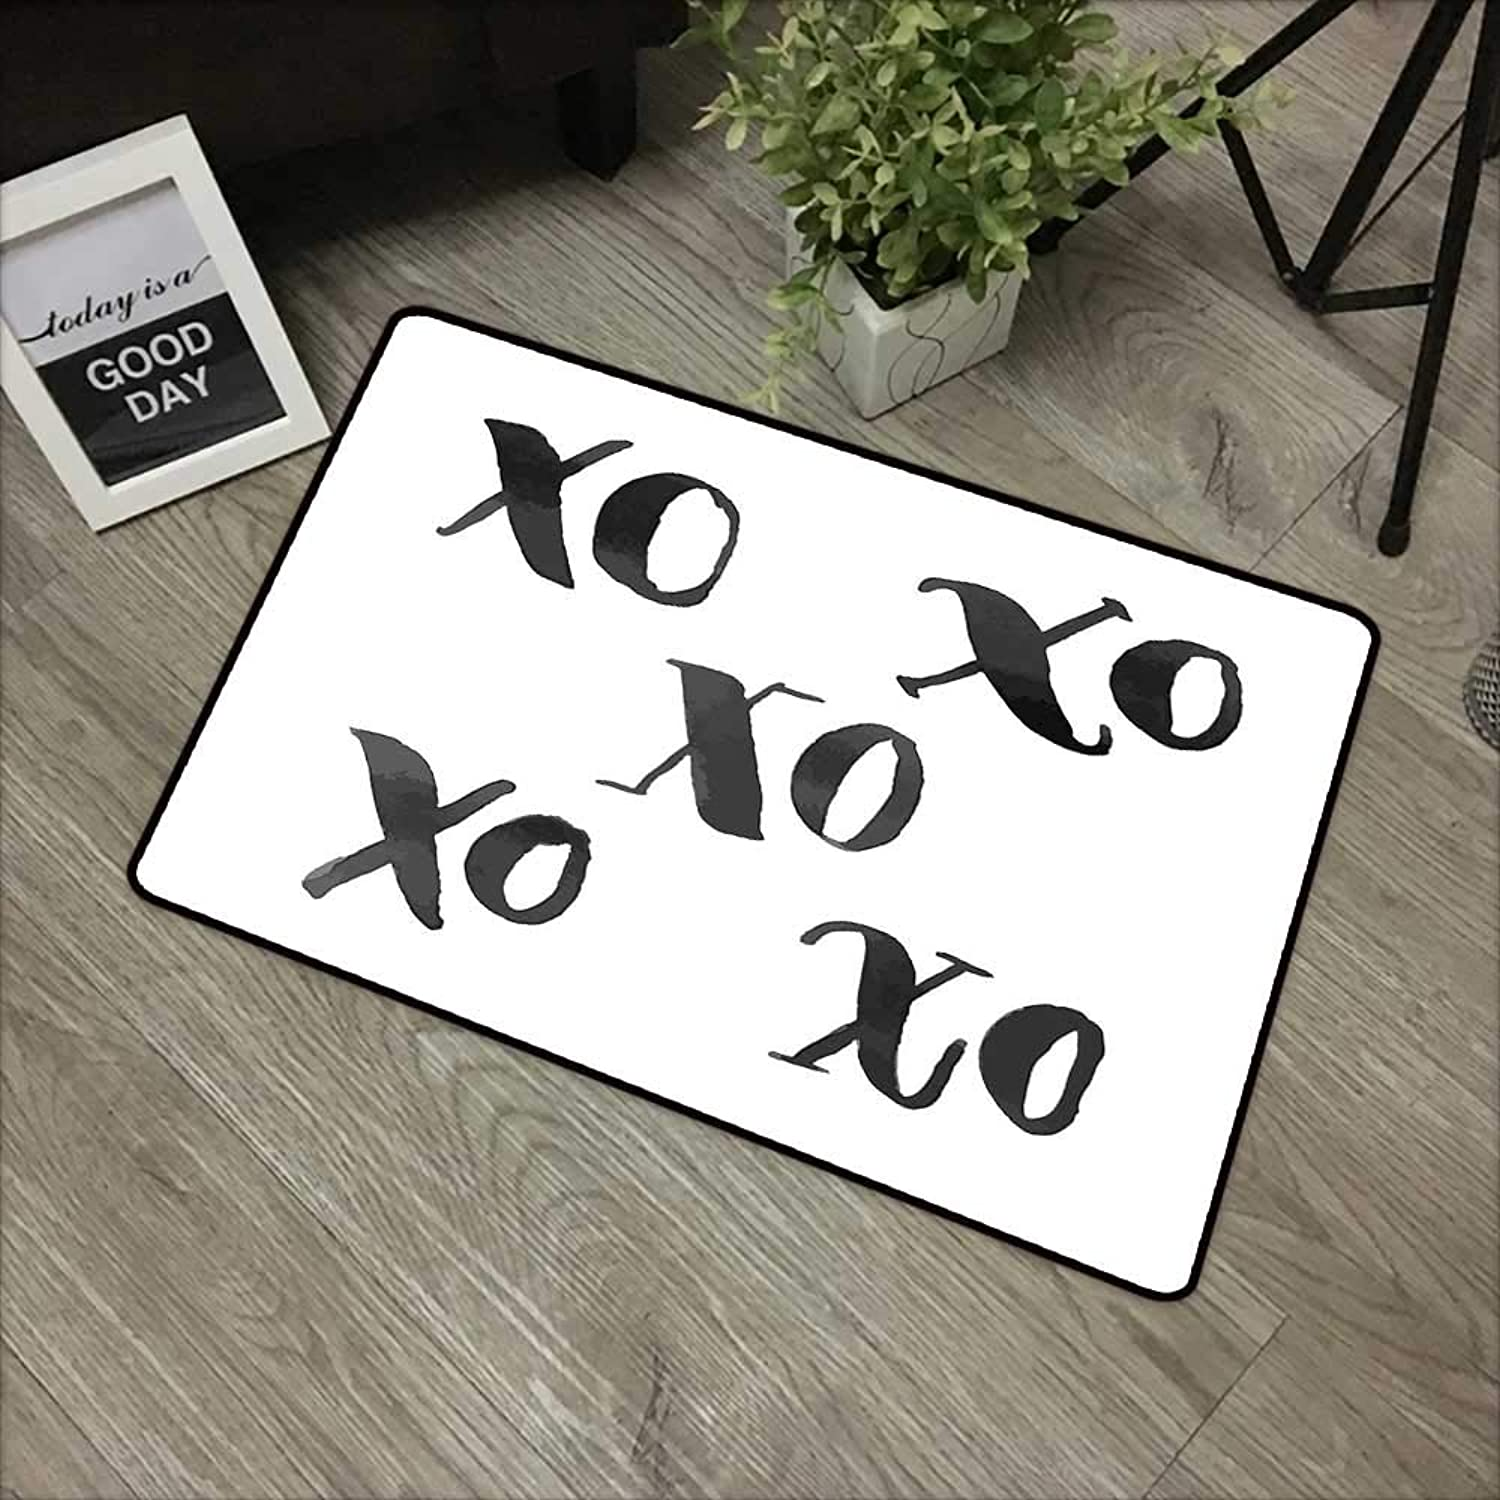 Restaurant mat W35 x L59 INCH Xo Decor,Hugs and Kisses Letters Written Classic Old Fashion Calligraphy Romance Print,Black White with Non-Slip Backing Door Mat Carpet